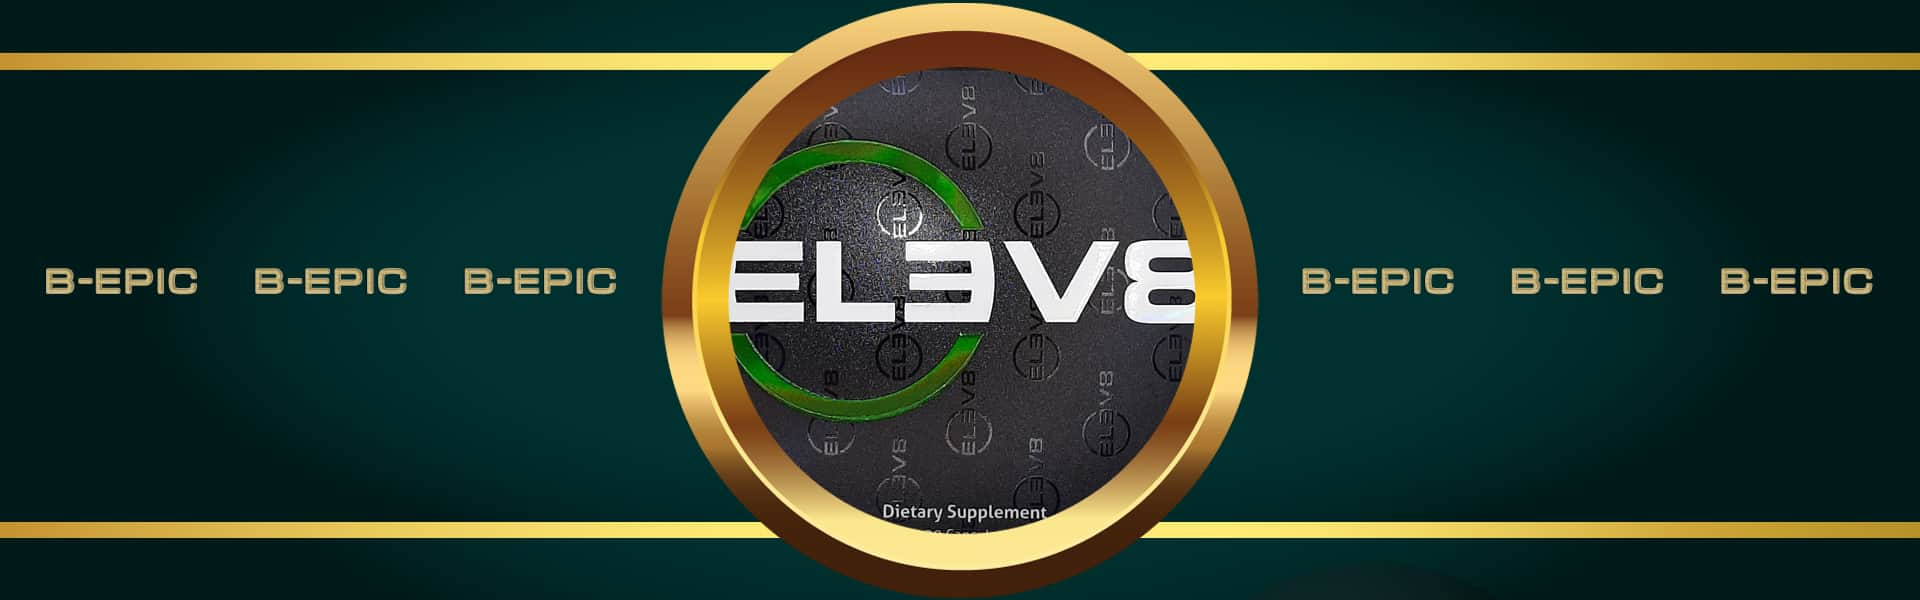 Elev8 website